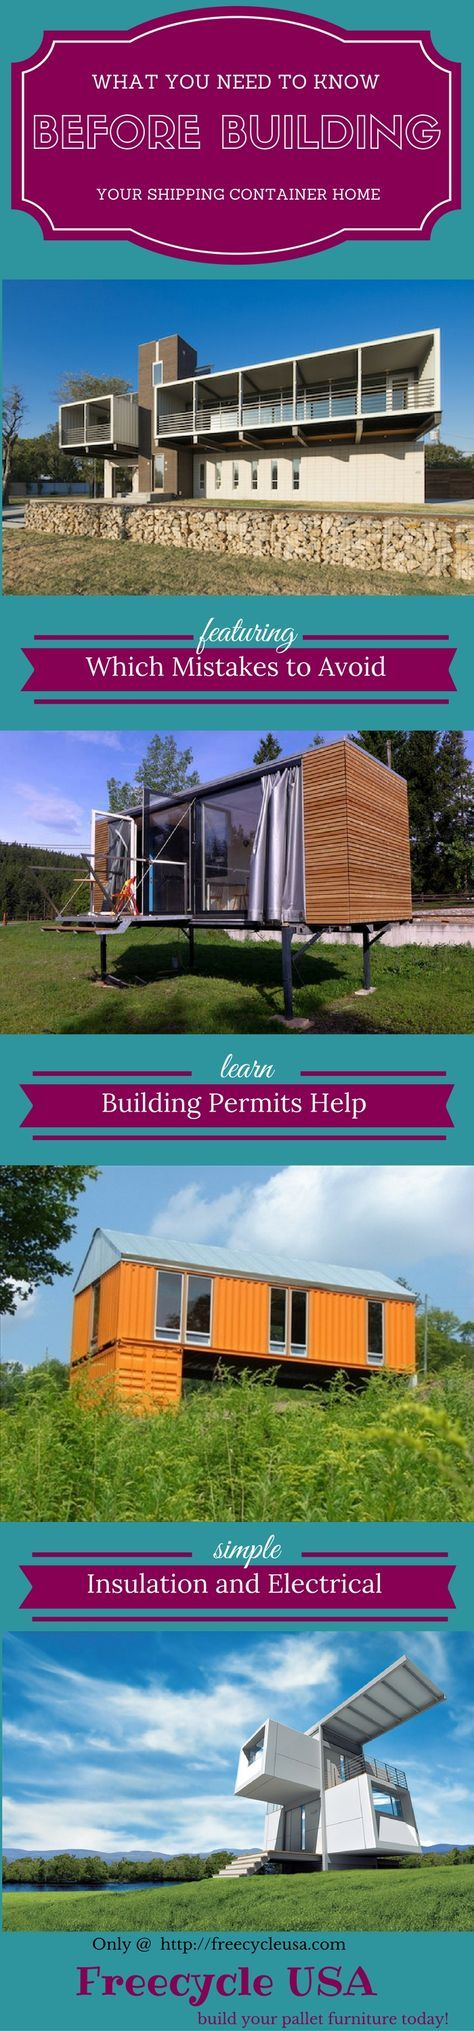 best 25+ container buildings ideas on pinterest | storage